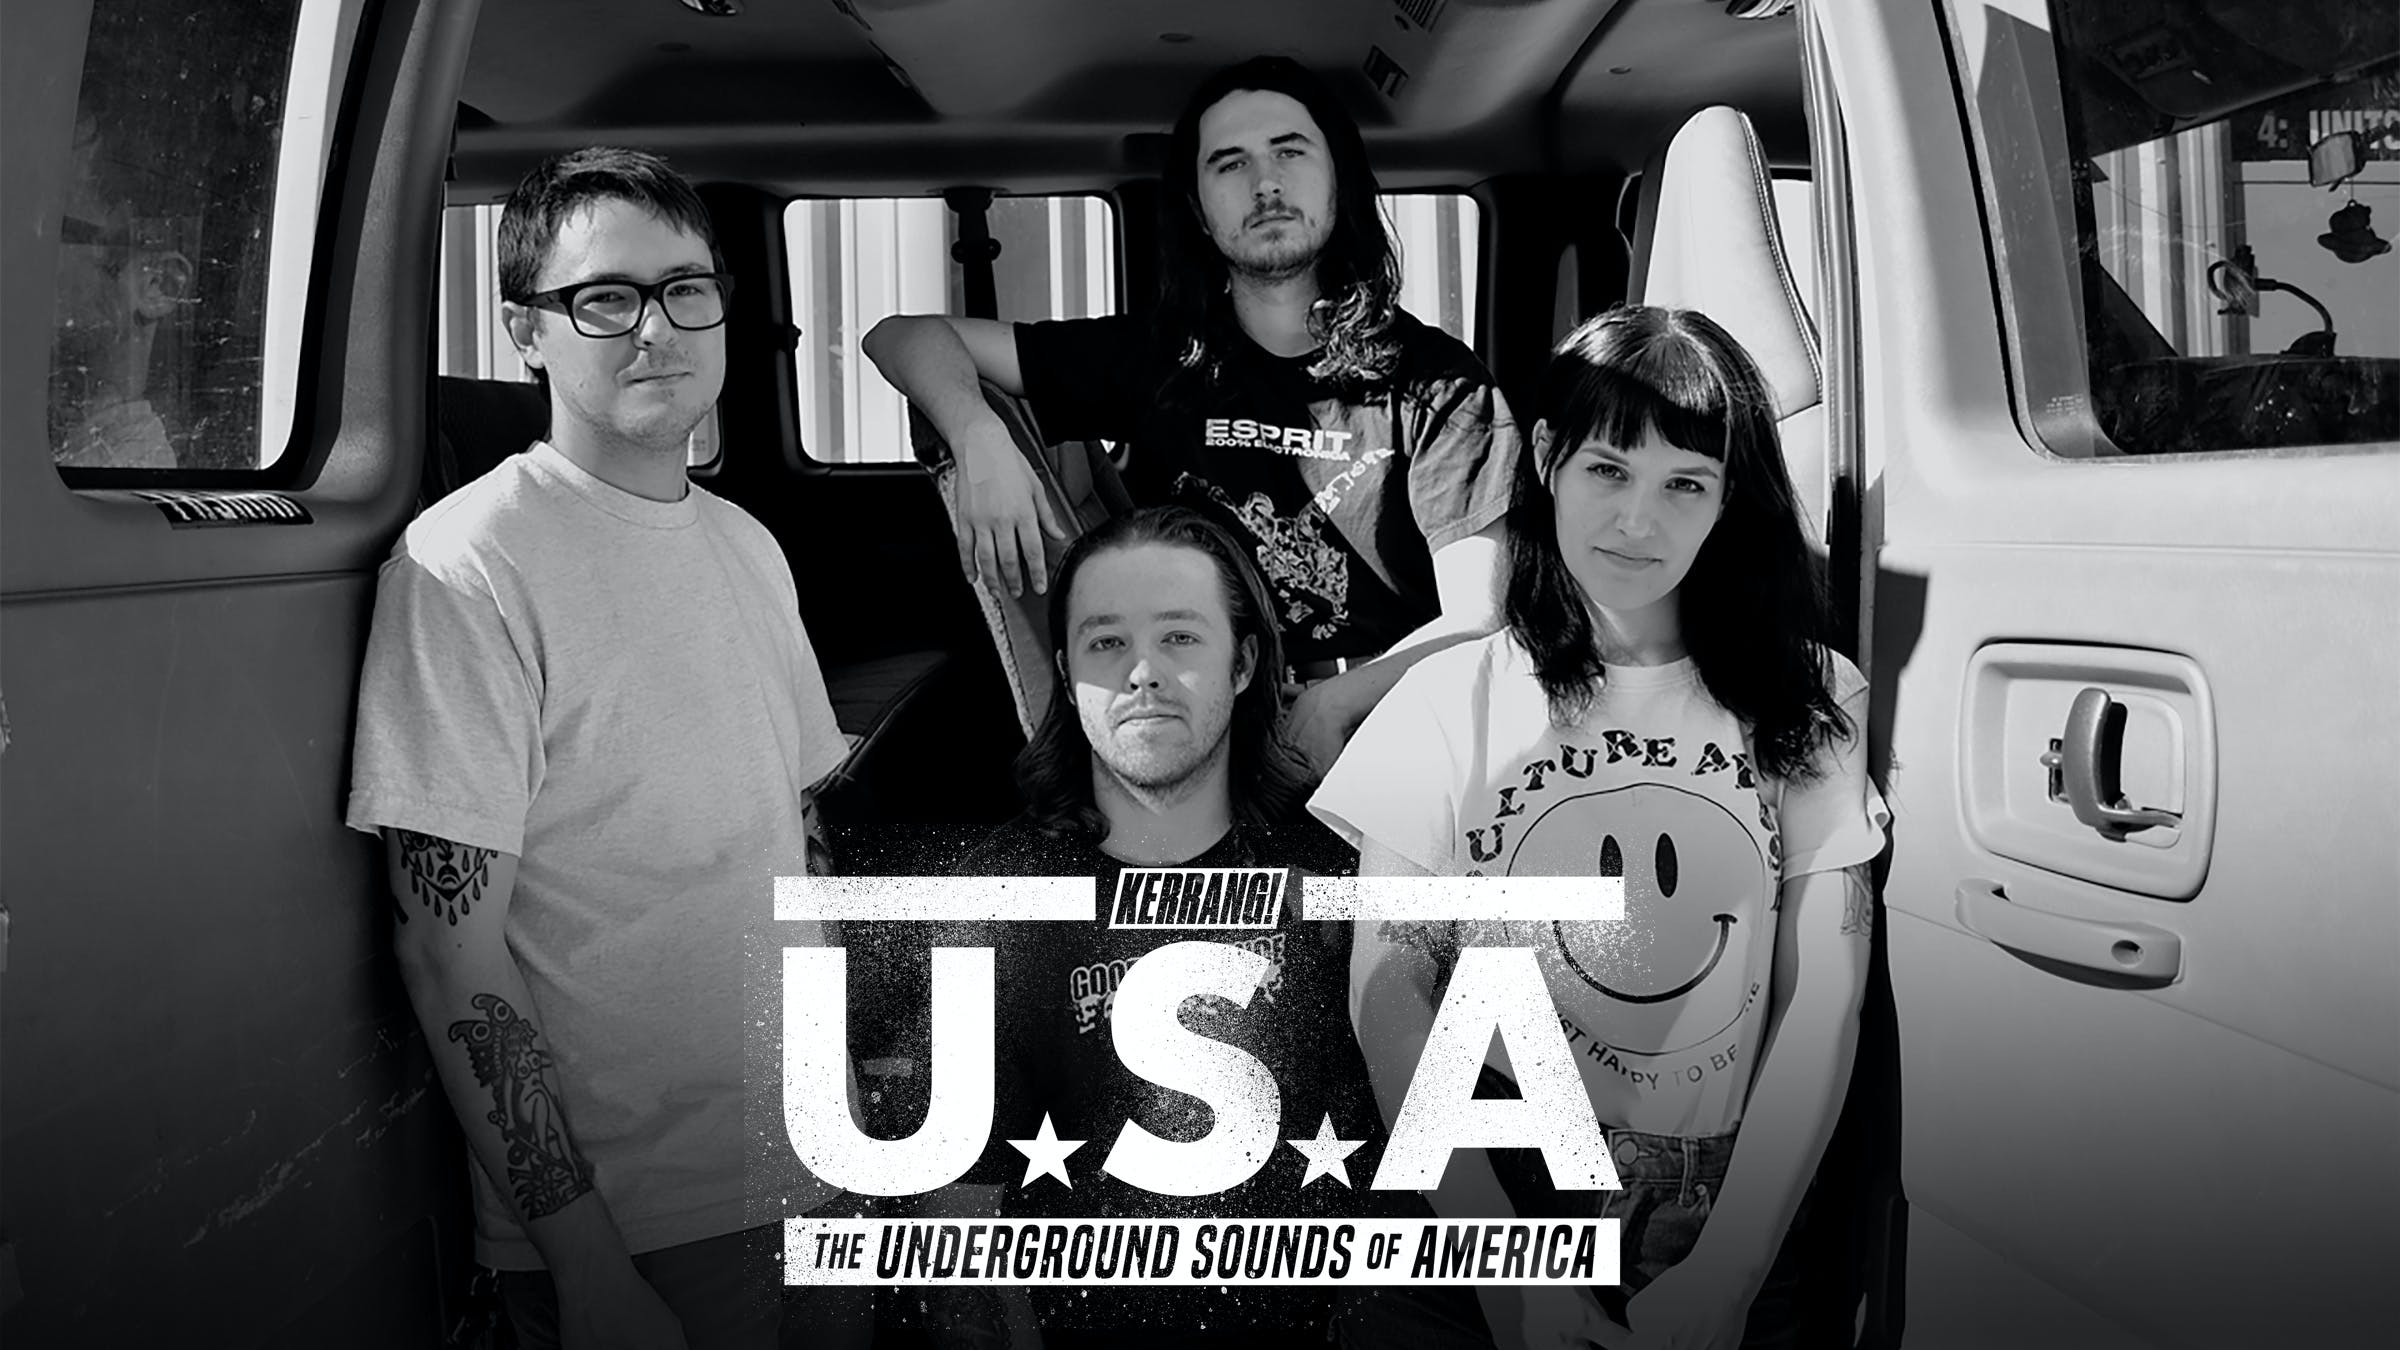 The Underground Sounds Of America: Gouge Away